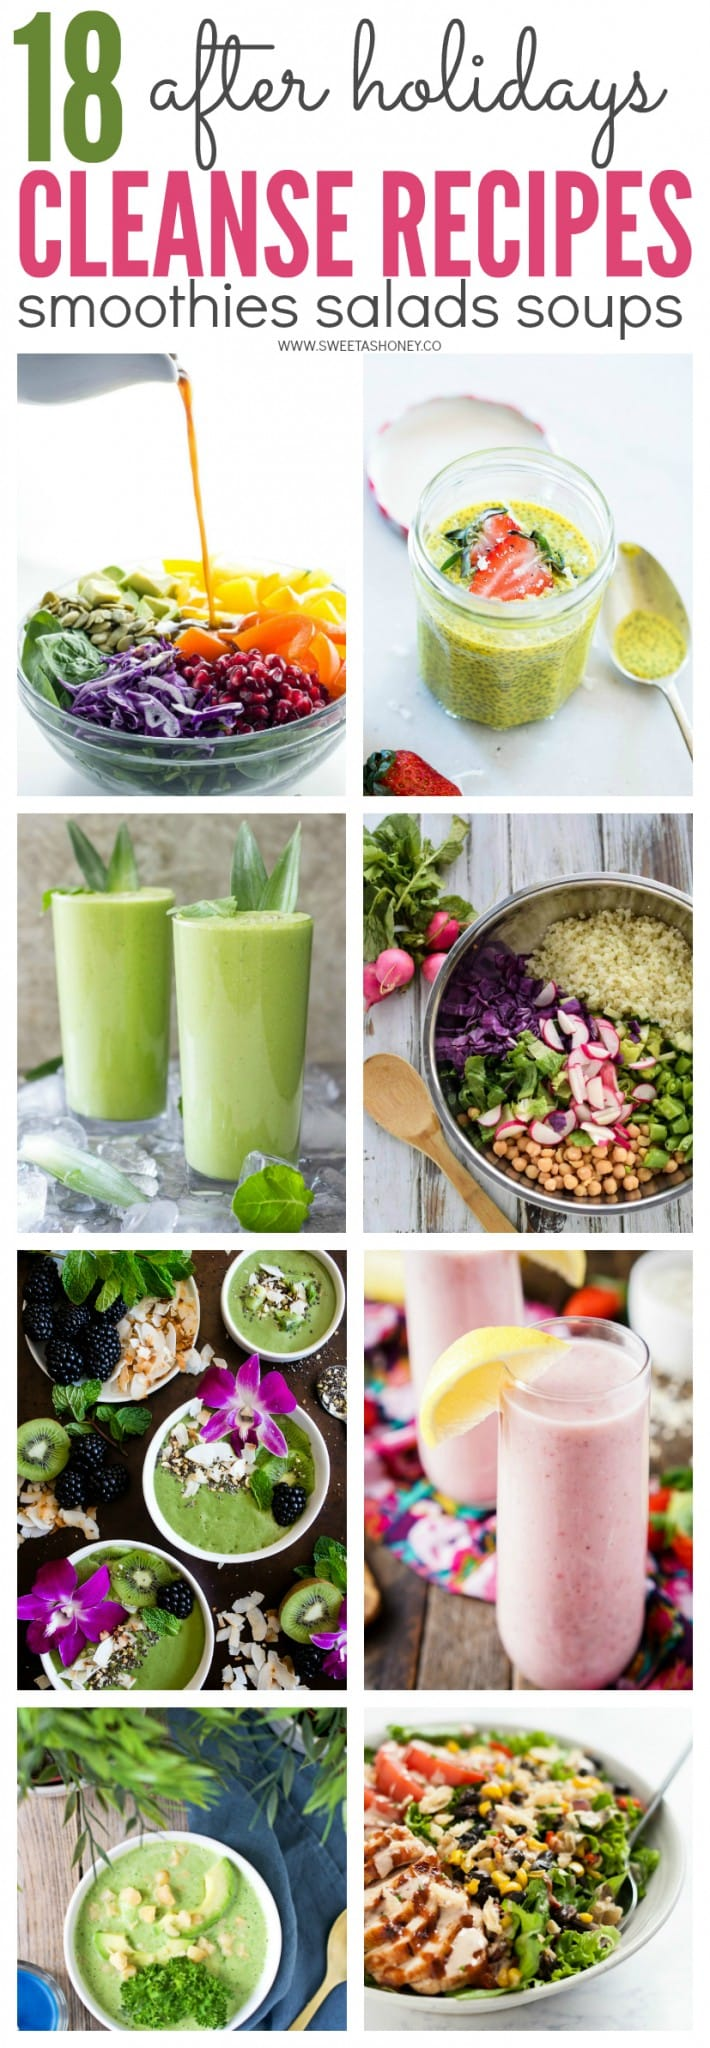 after holidays cleanse recipes